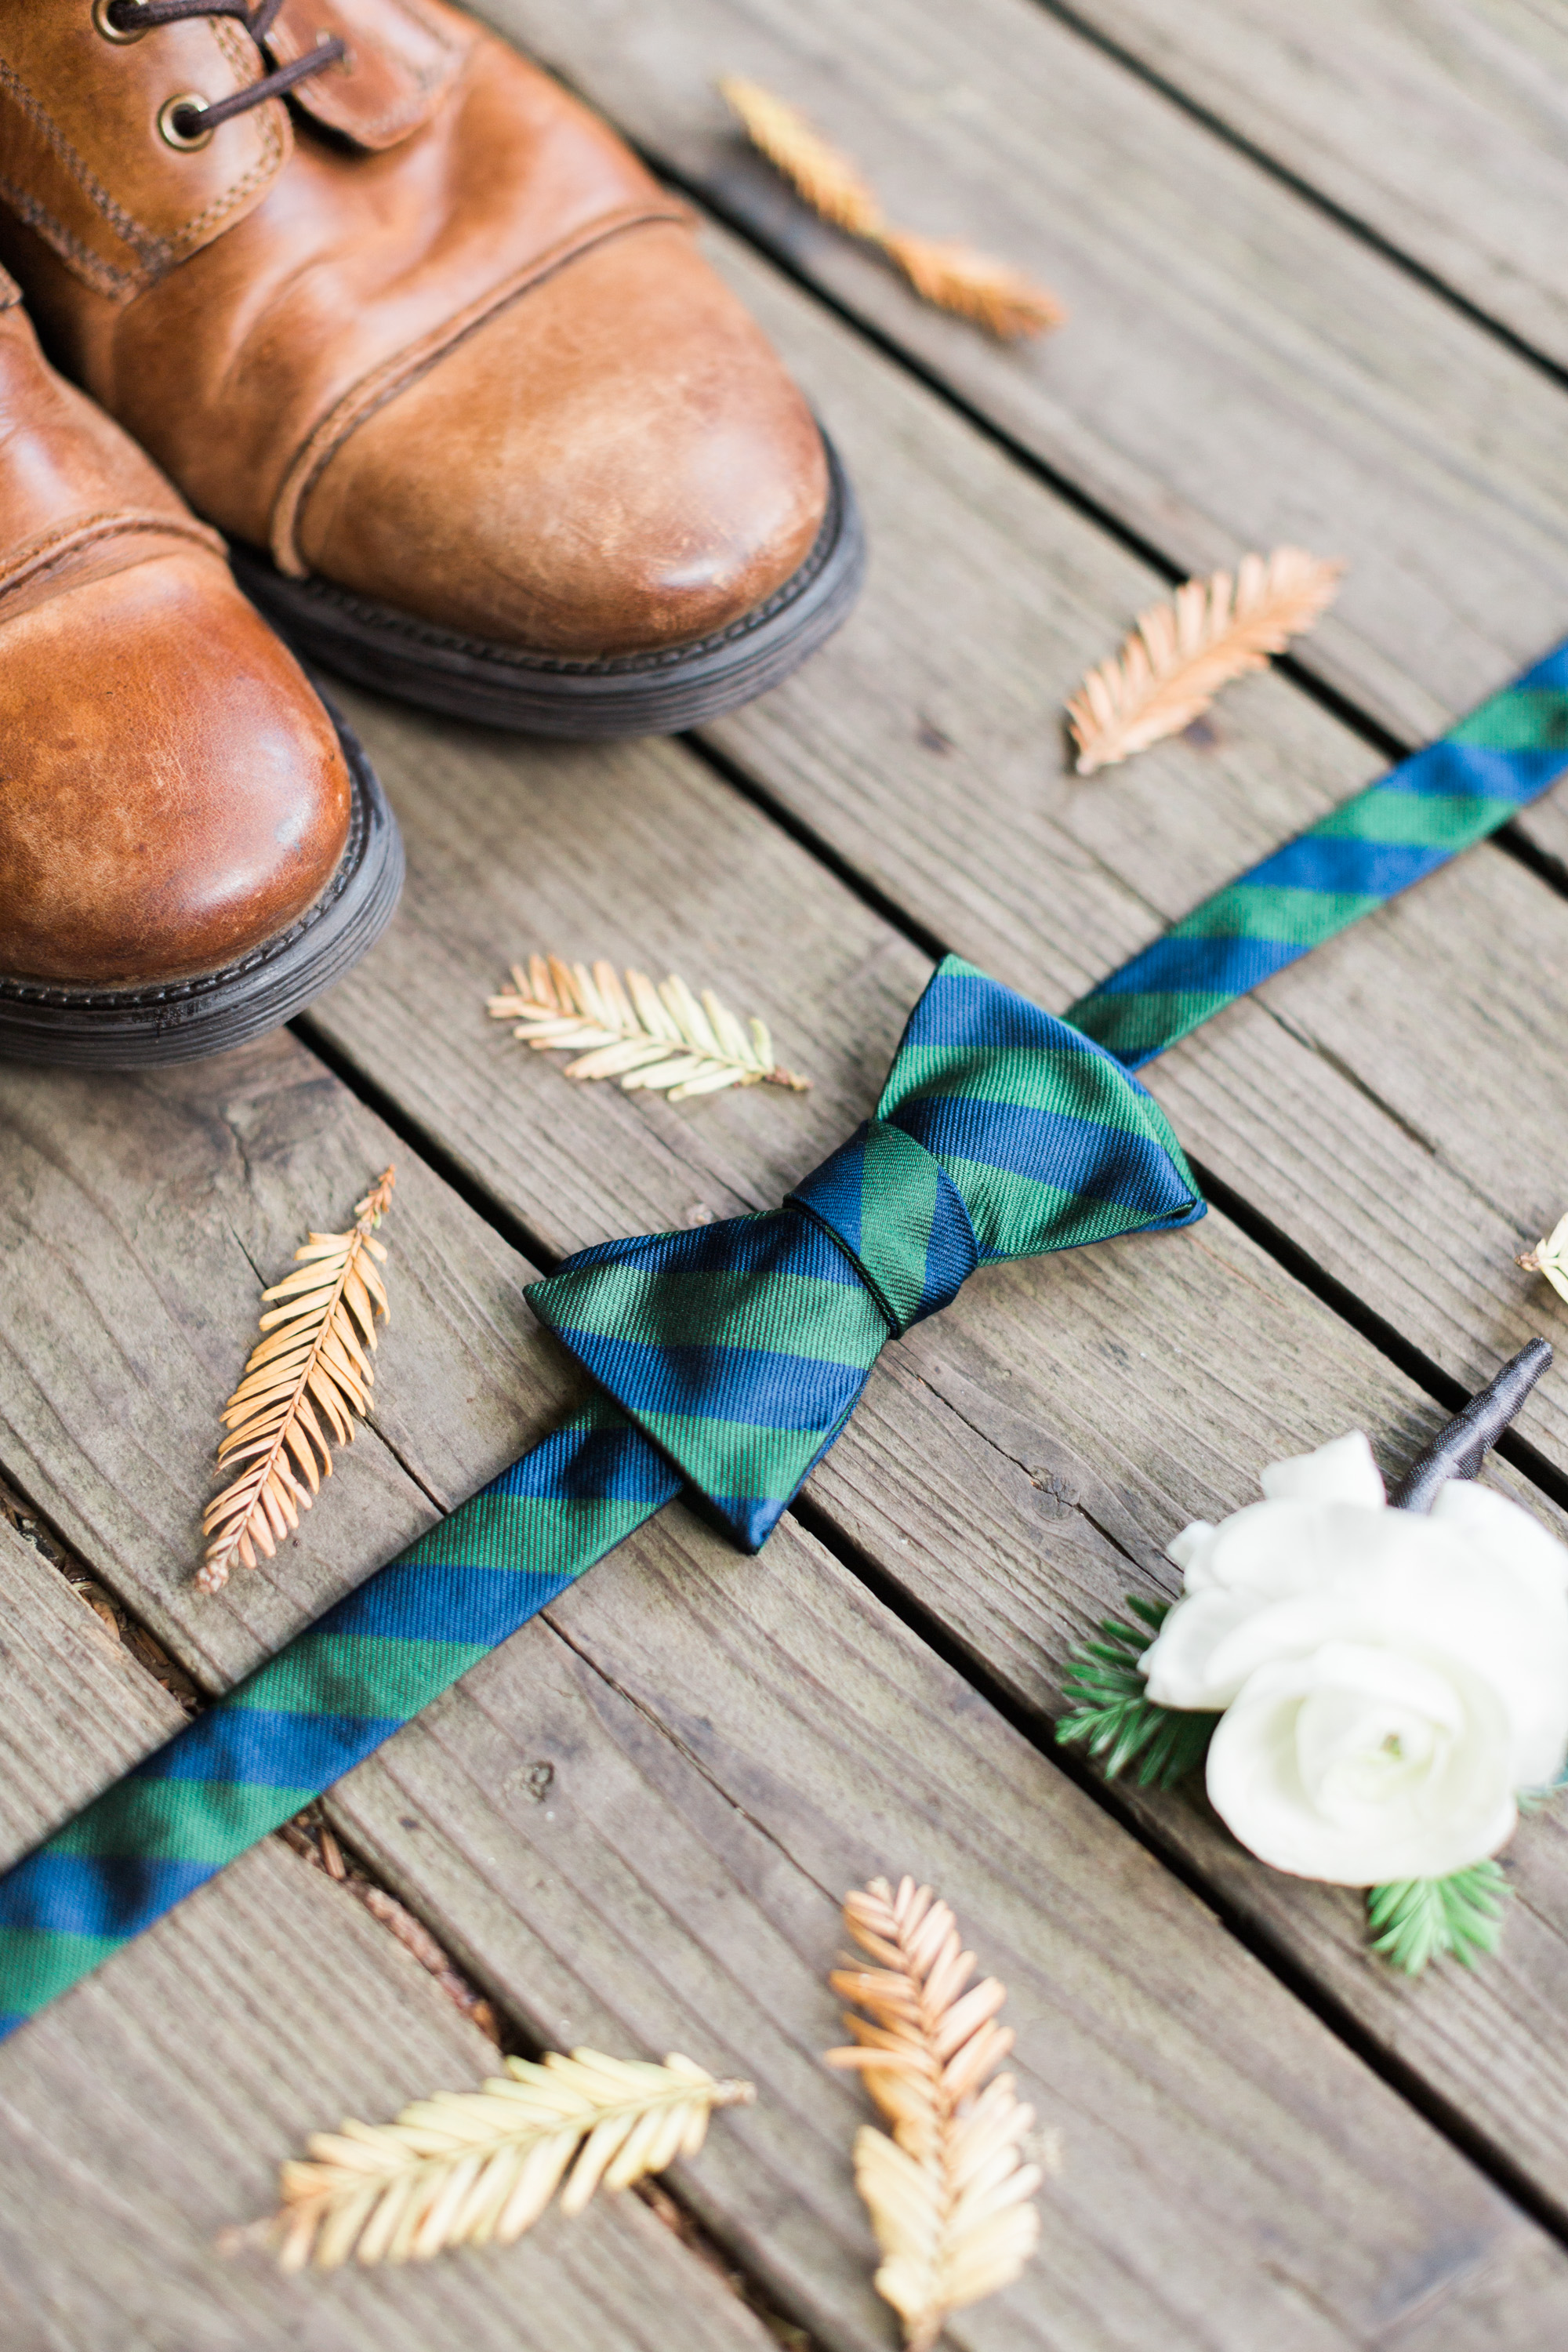 Grooms details with blue bowtie and leather shoes